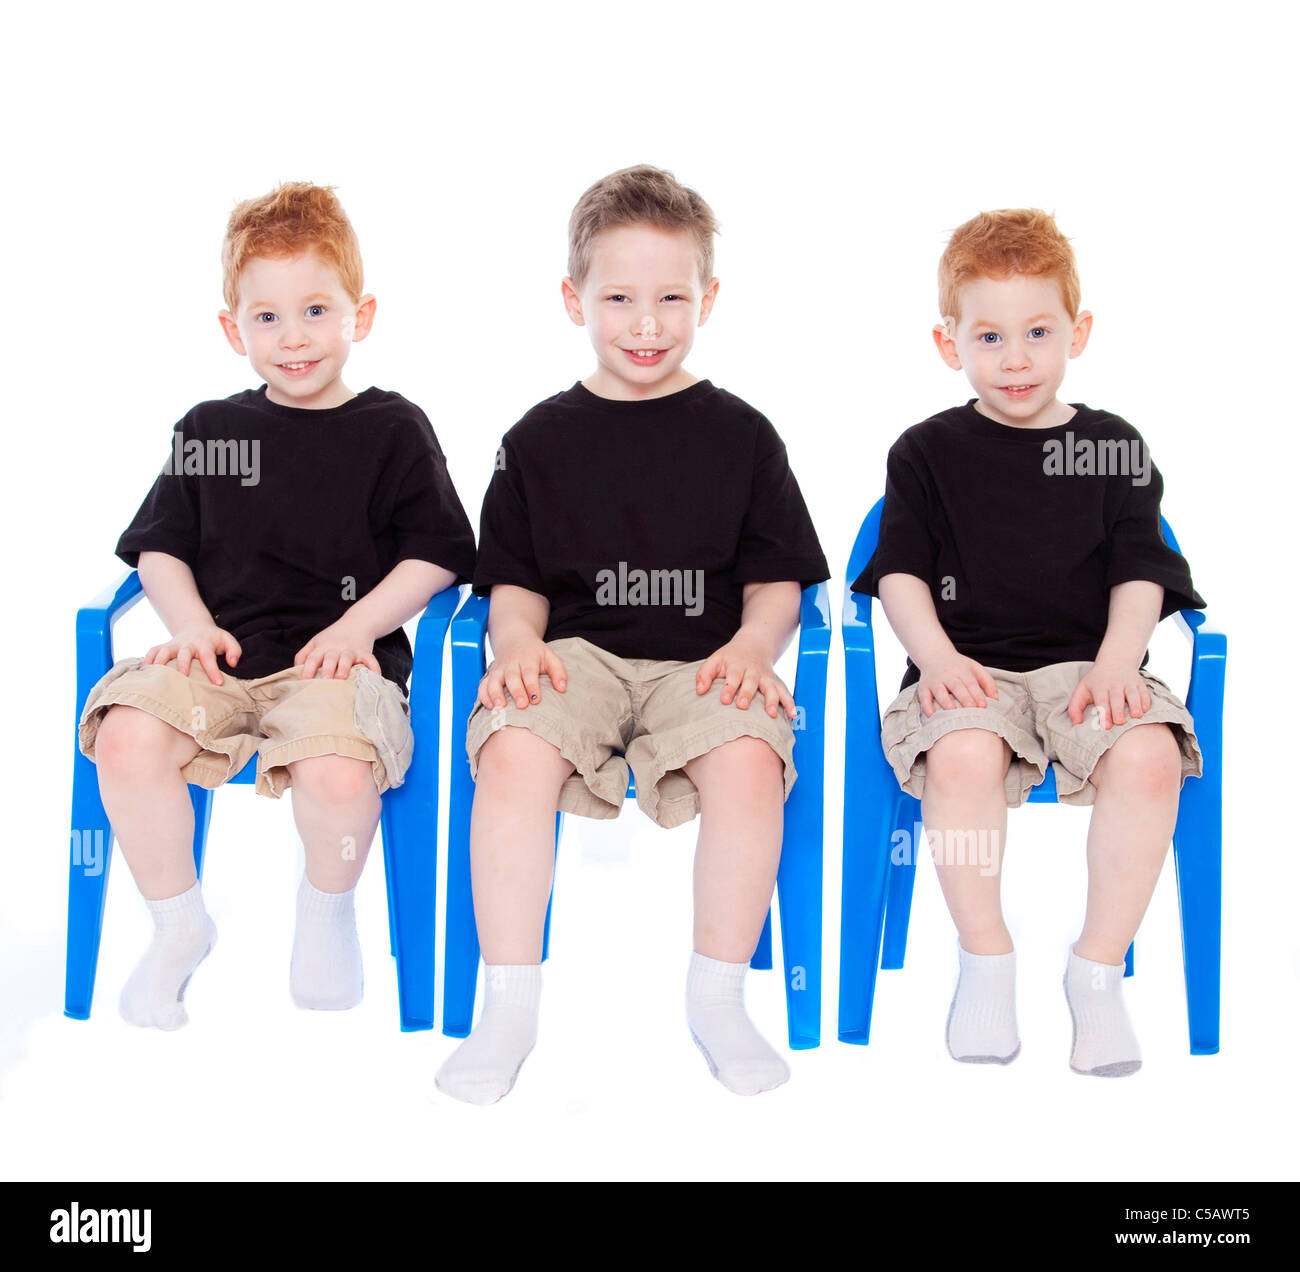 Three boys sitting on blue chairs on white - Stock Image